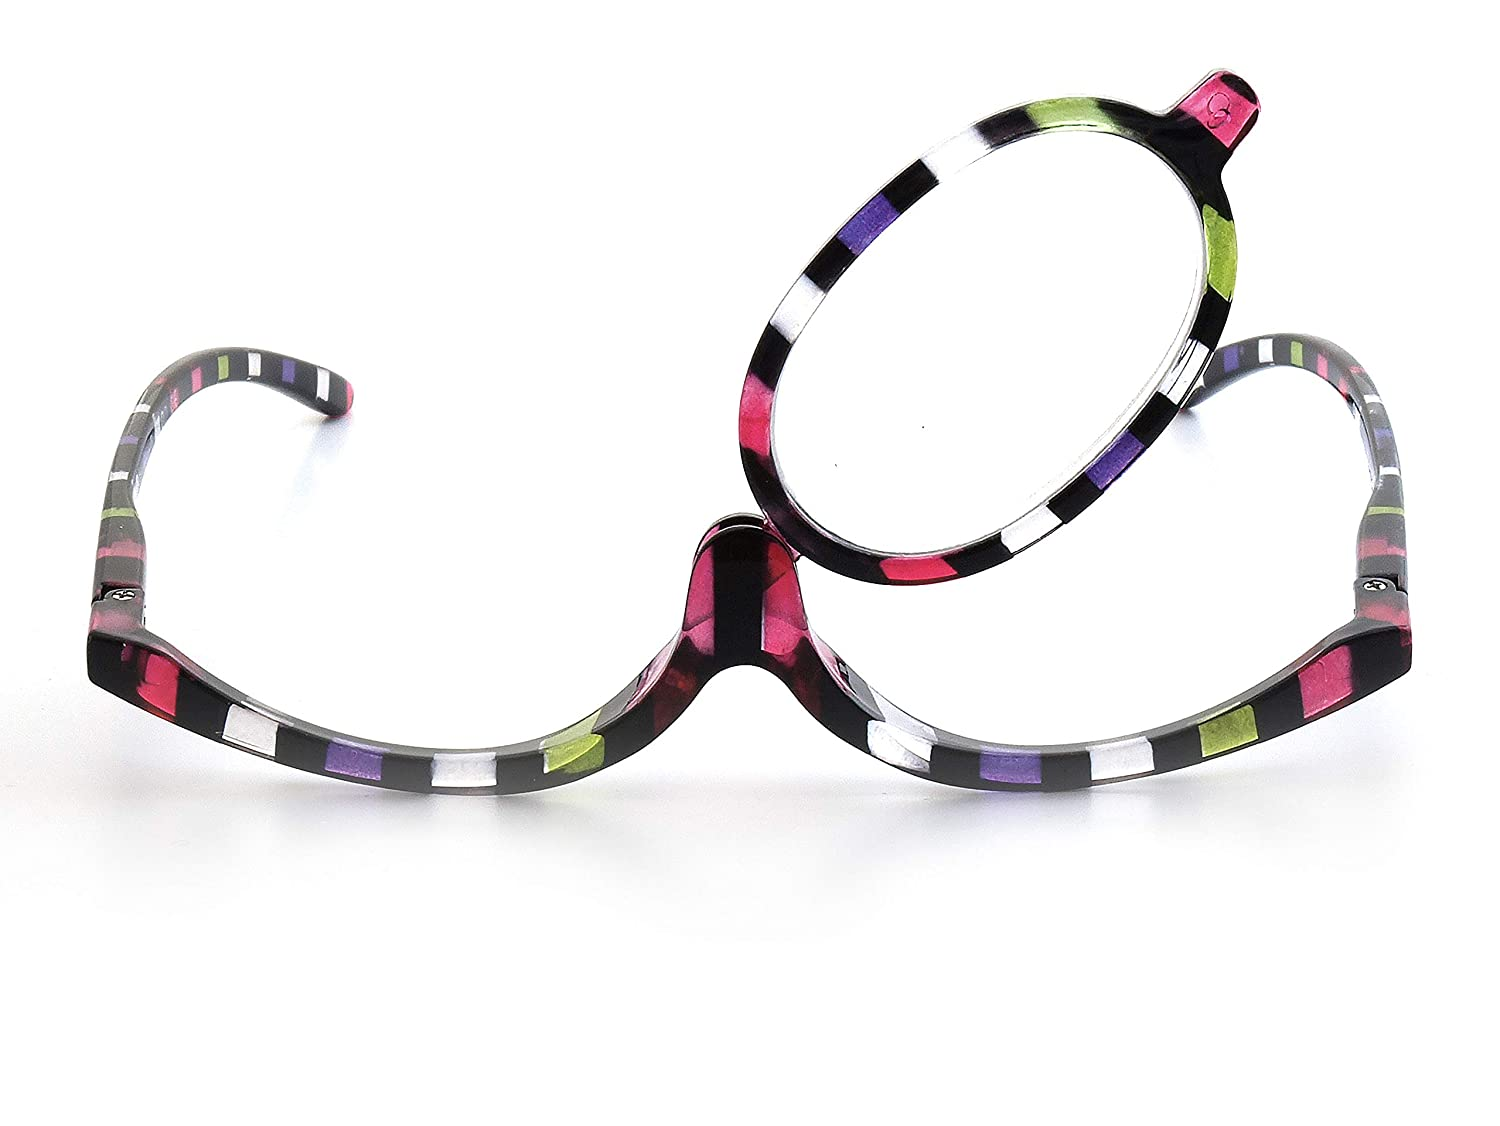 50c51f3bd72 Make-Up Glasses Multi Stripe by Goodlookers with Switchable Lense  GX1039MUL  Amazon.co.uk  Health   Personal Care